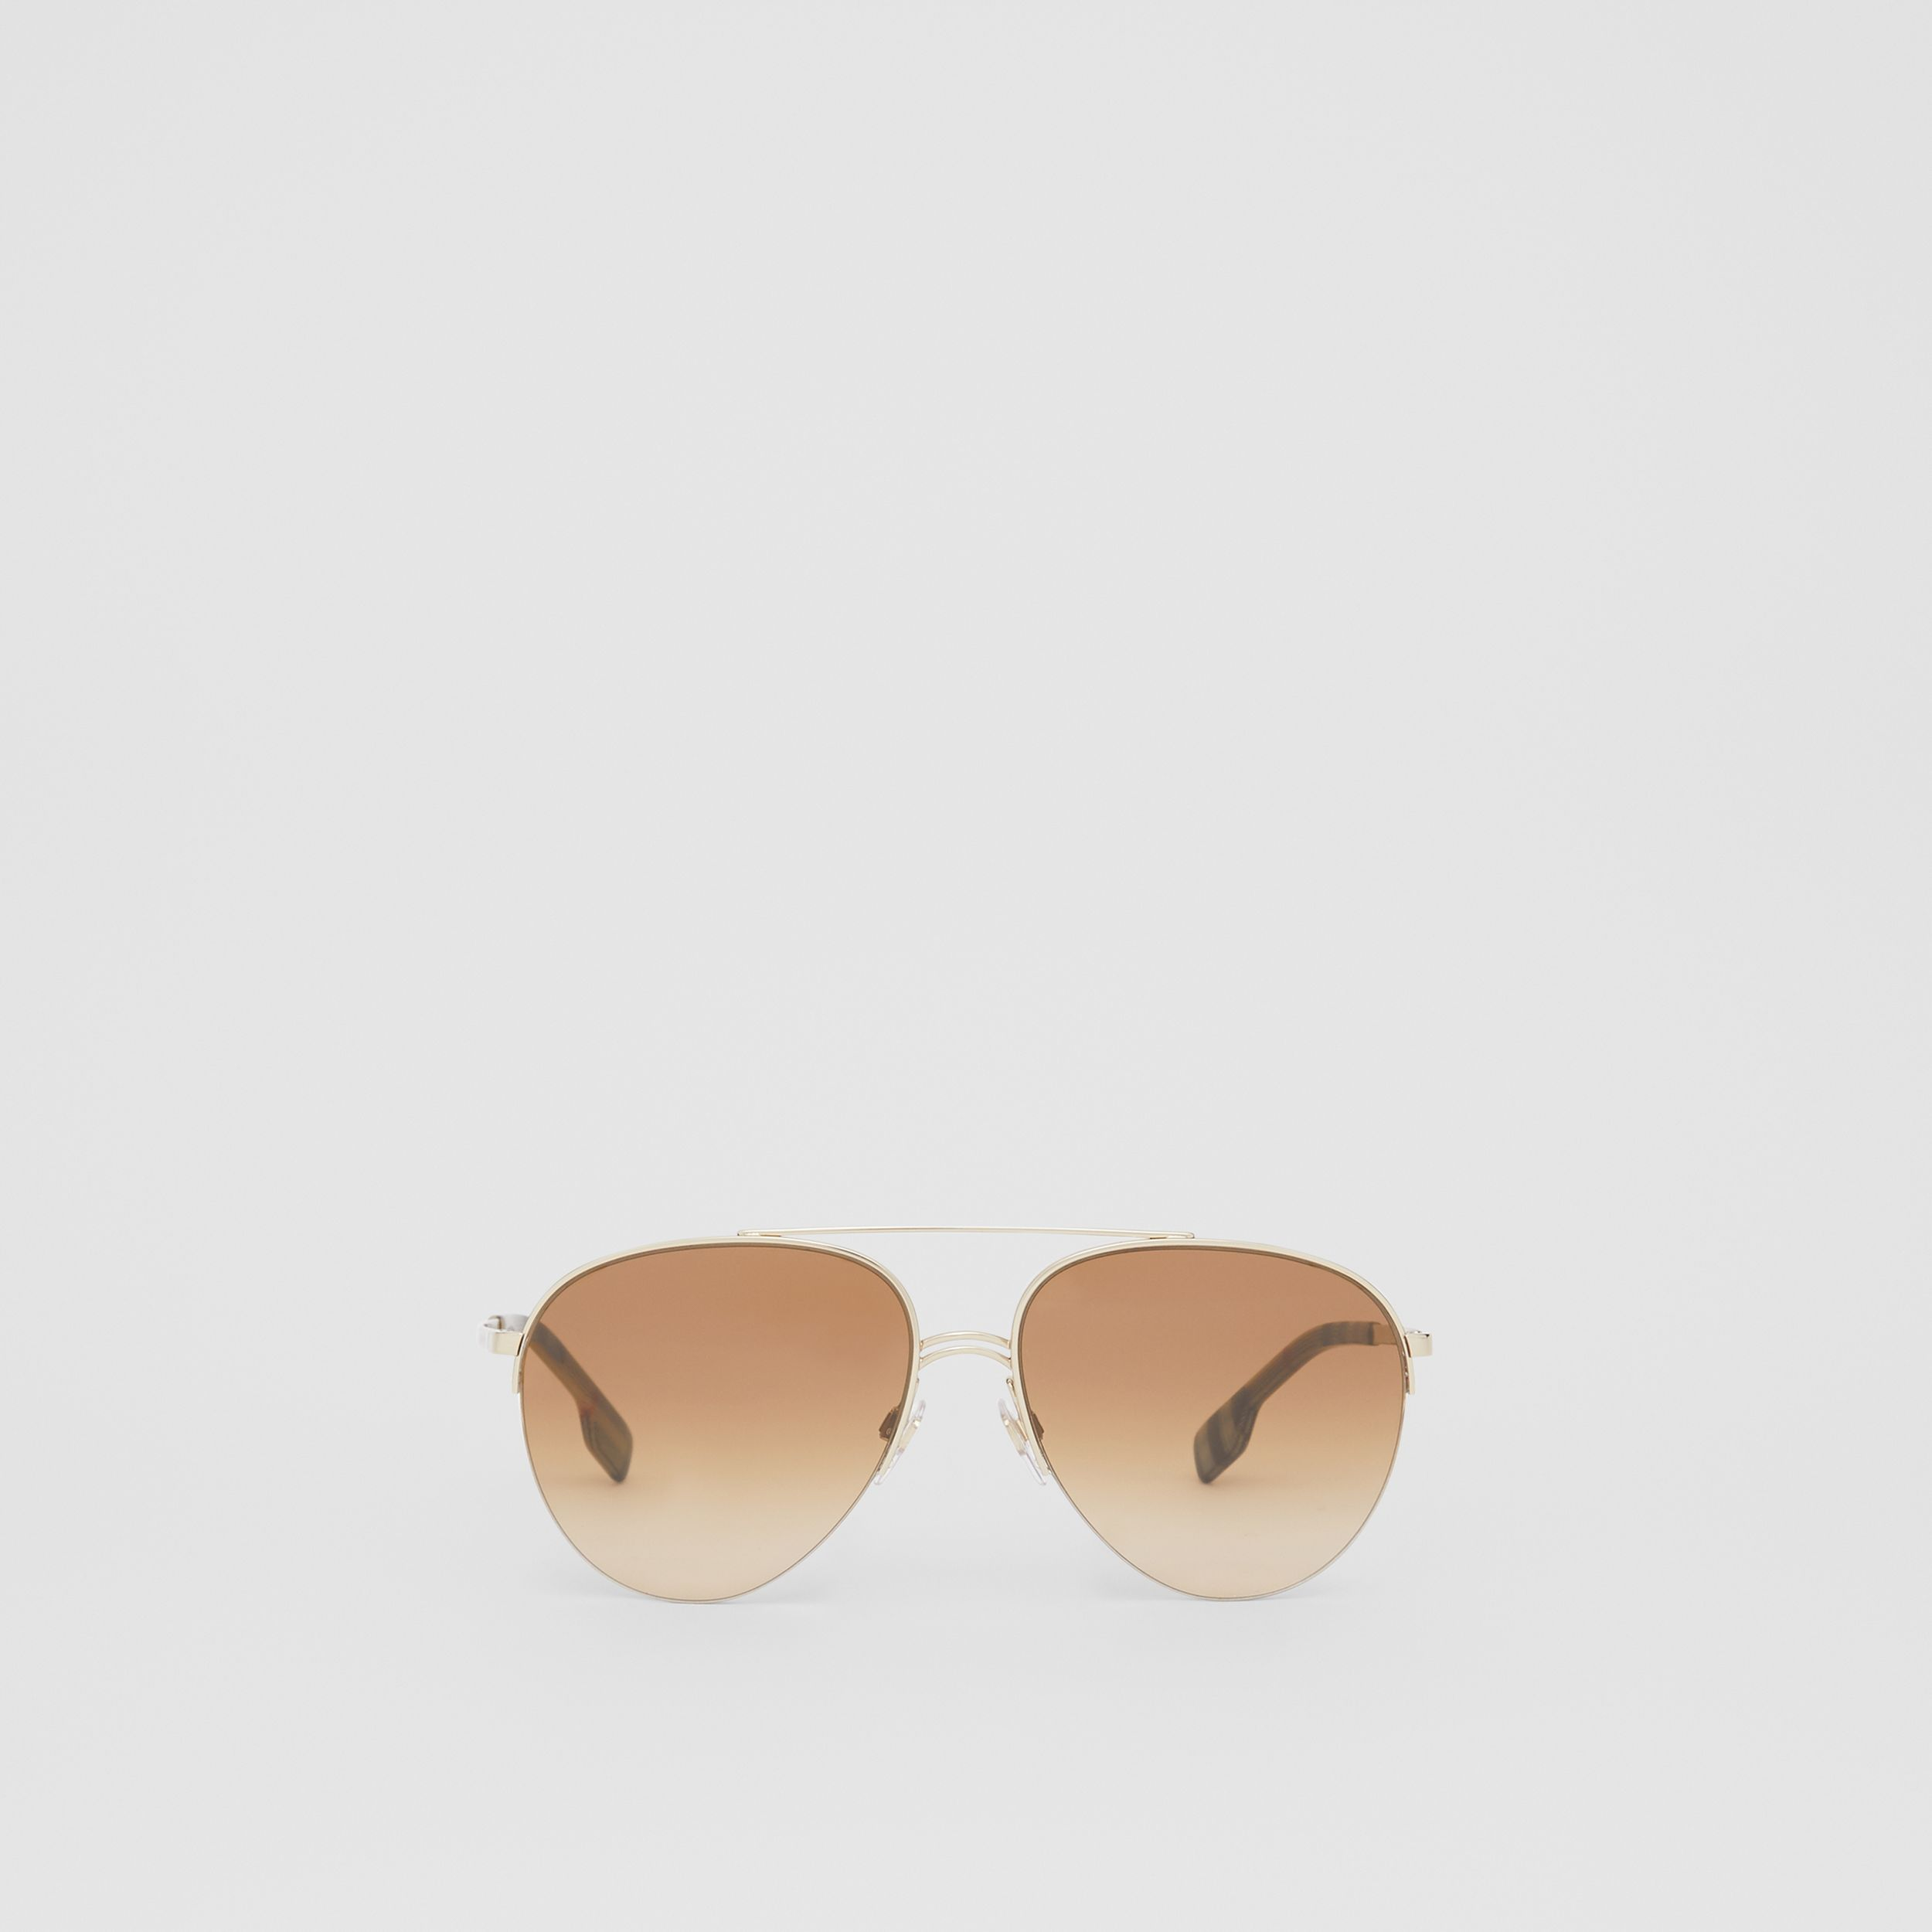 Top Bar Detail Pilot Sunglasses in Light Brown - Women | Burberry - 1